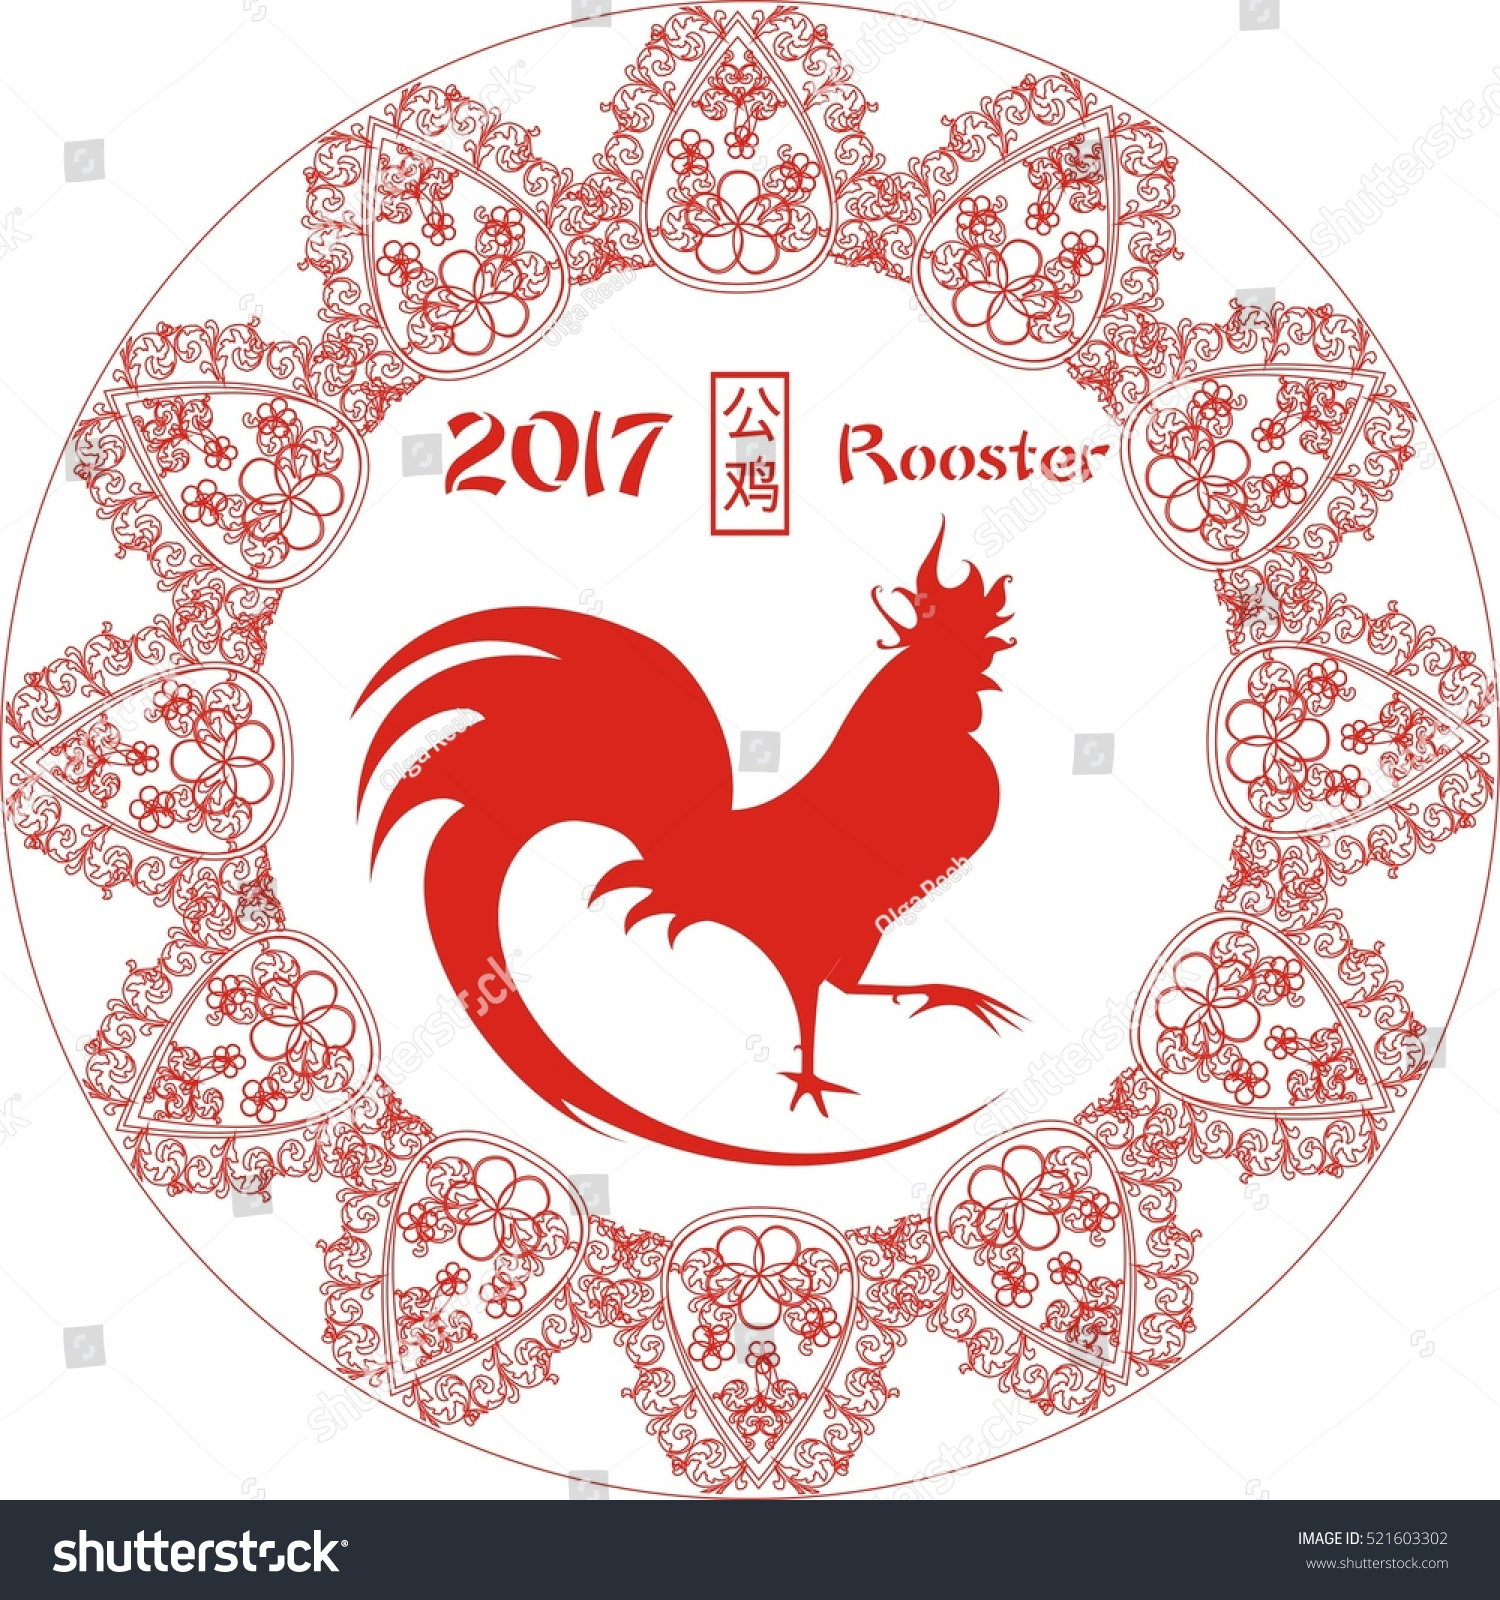 Rooster silhouette stepping forward fire chinese stock vector rooster silhouette stepping forward with fire and chinese characters for the new year 2017 the buycottarizona